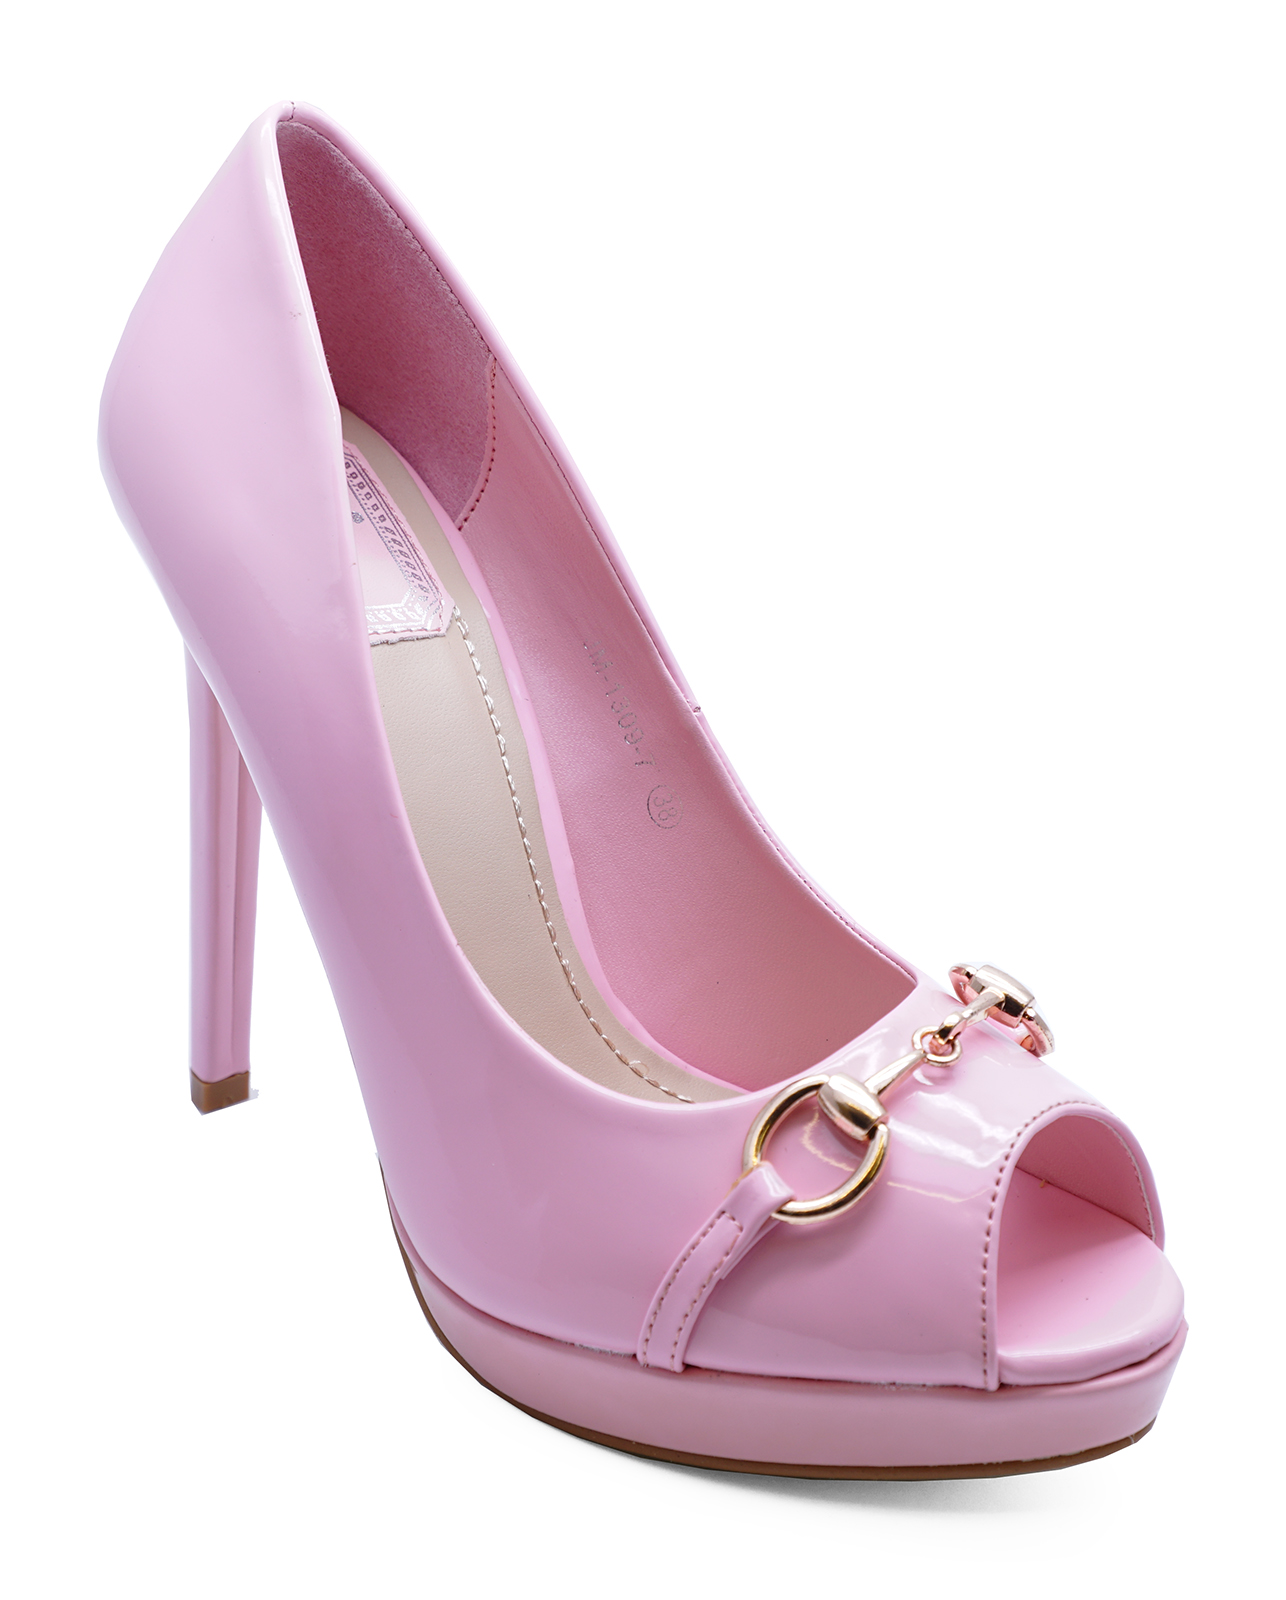 Details about WOMENS PINK OPEN-TOE HIGH-HEEL EXOTIC PLATFORM STILETTO SANDALS  SHOES UK 2-7 5371f0b2e